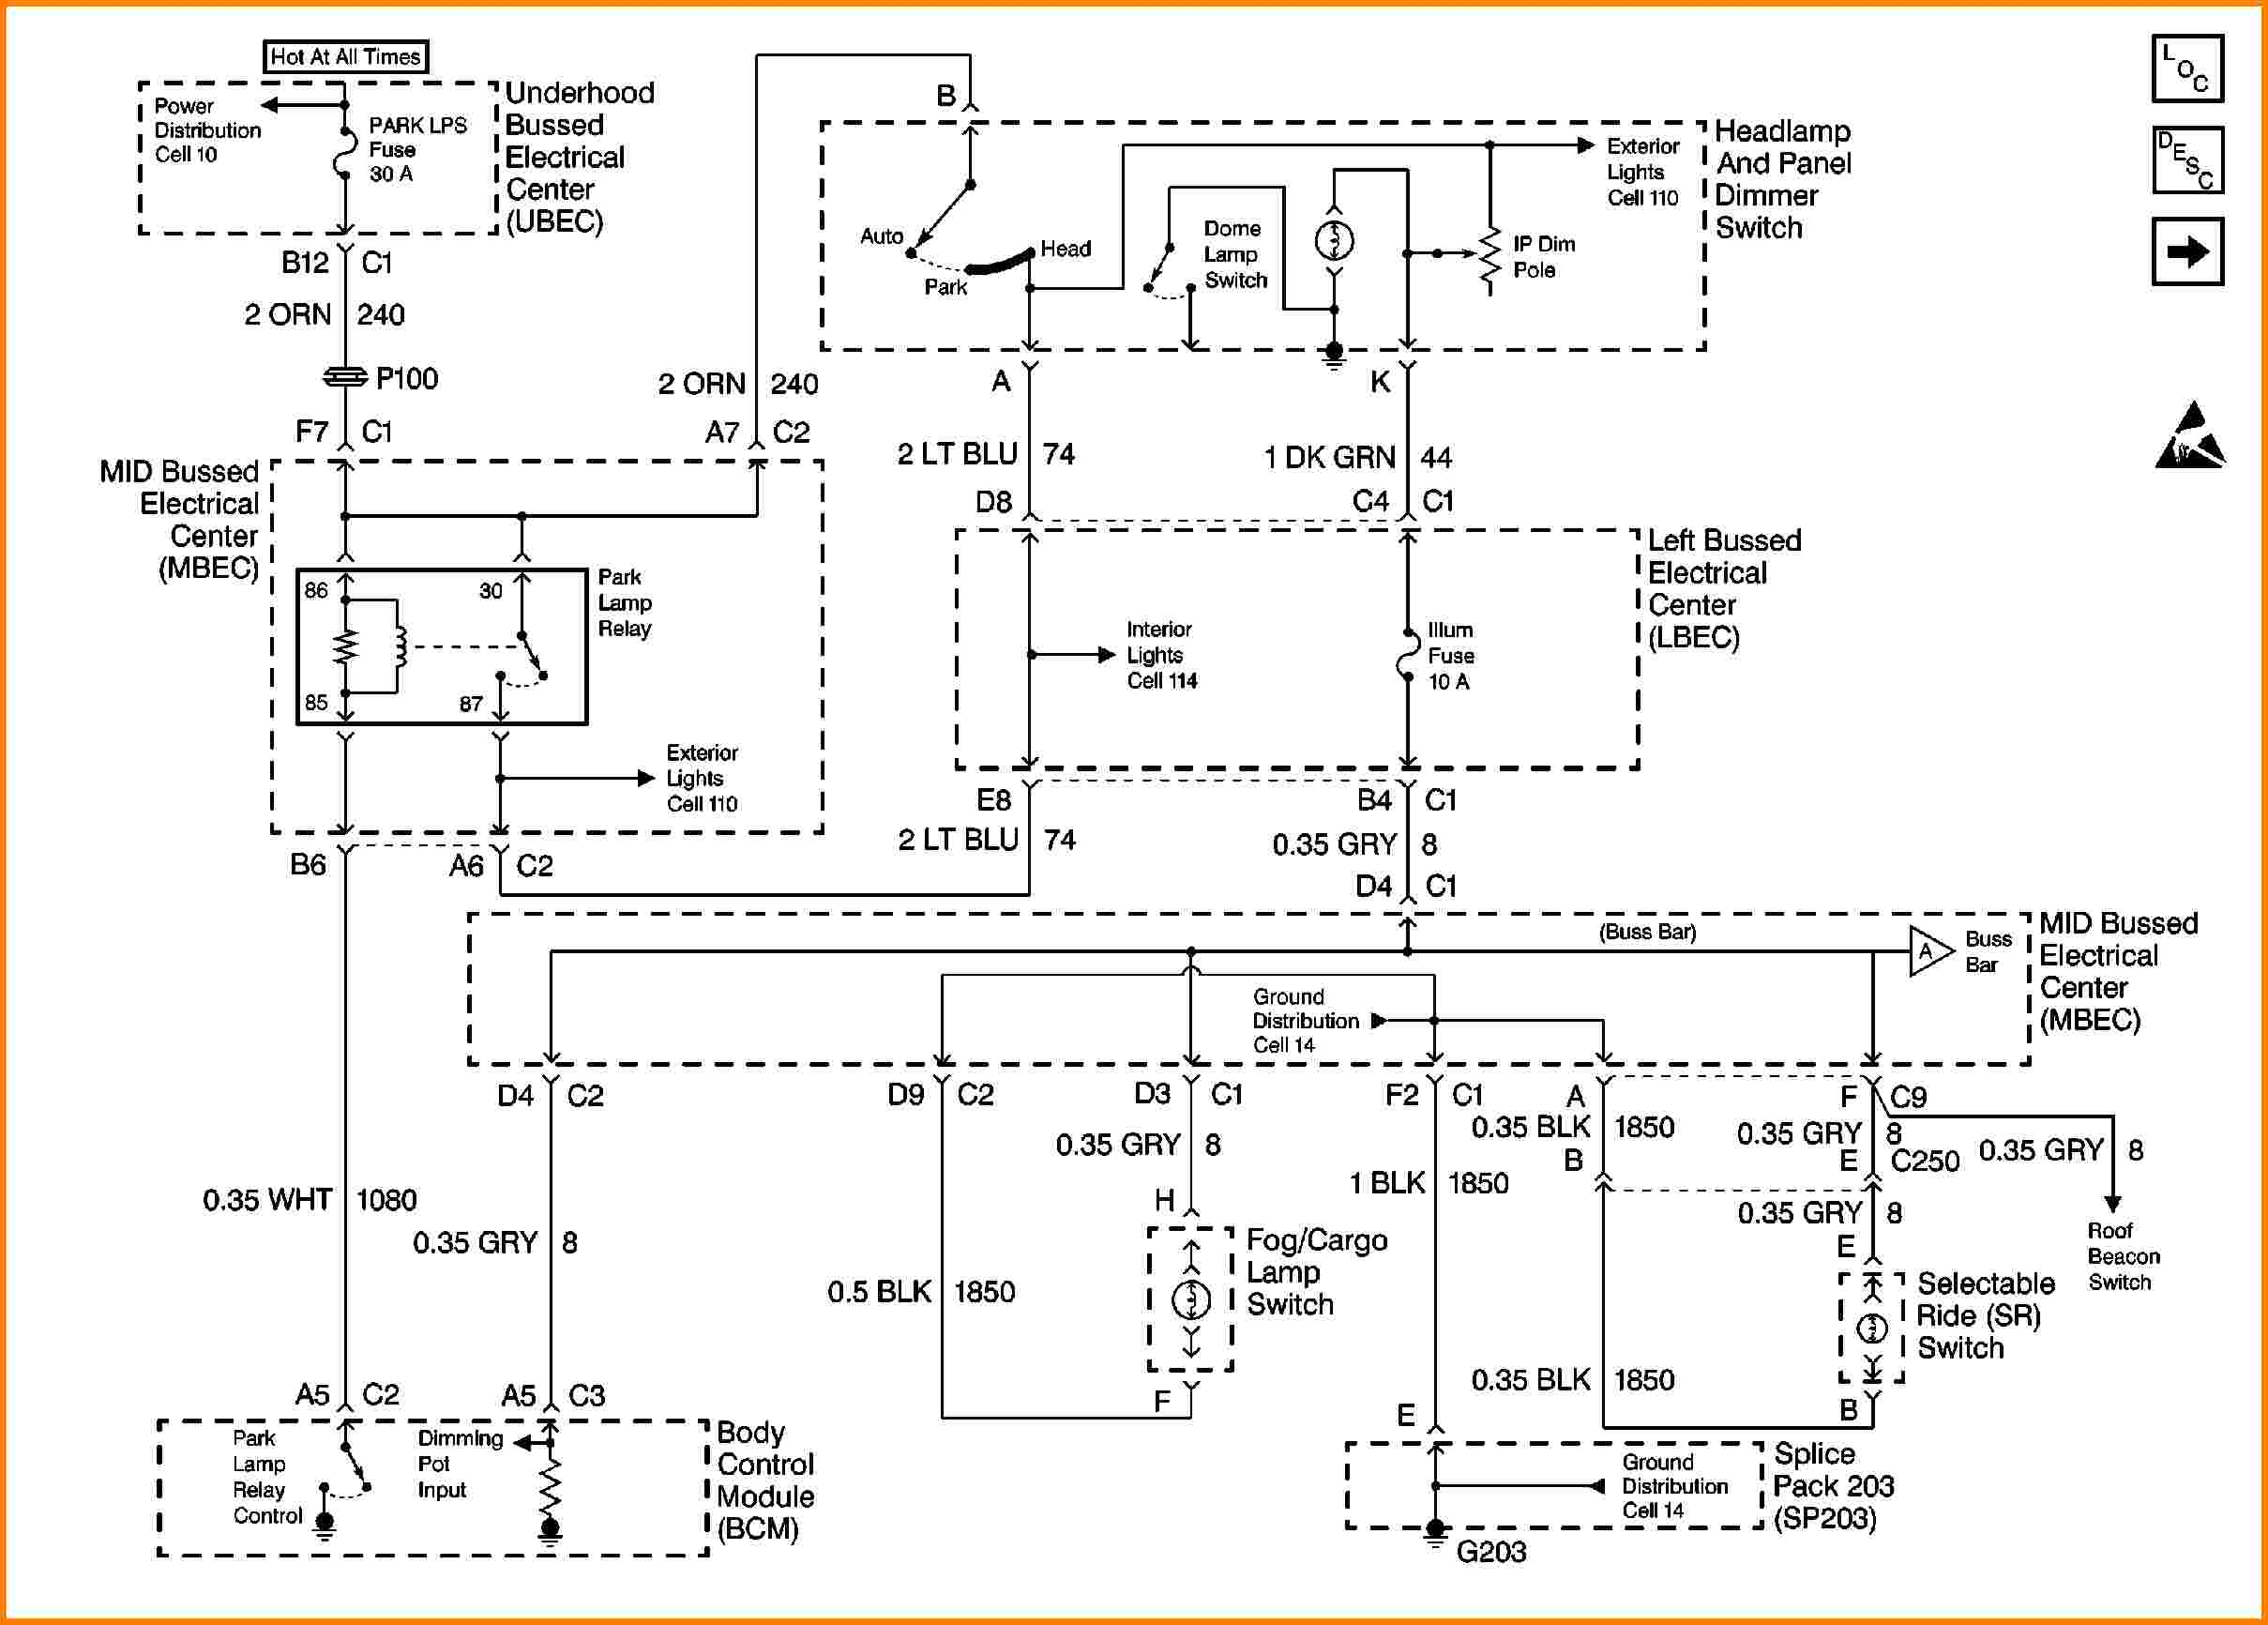 Chevy Silverado Drawing At Free For Personal Use 1983 Headlight Dimmer Switch Wiring Diagram 2418x1732 2003 Relay Cable